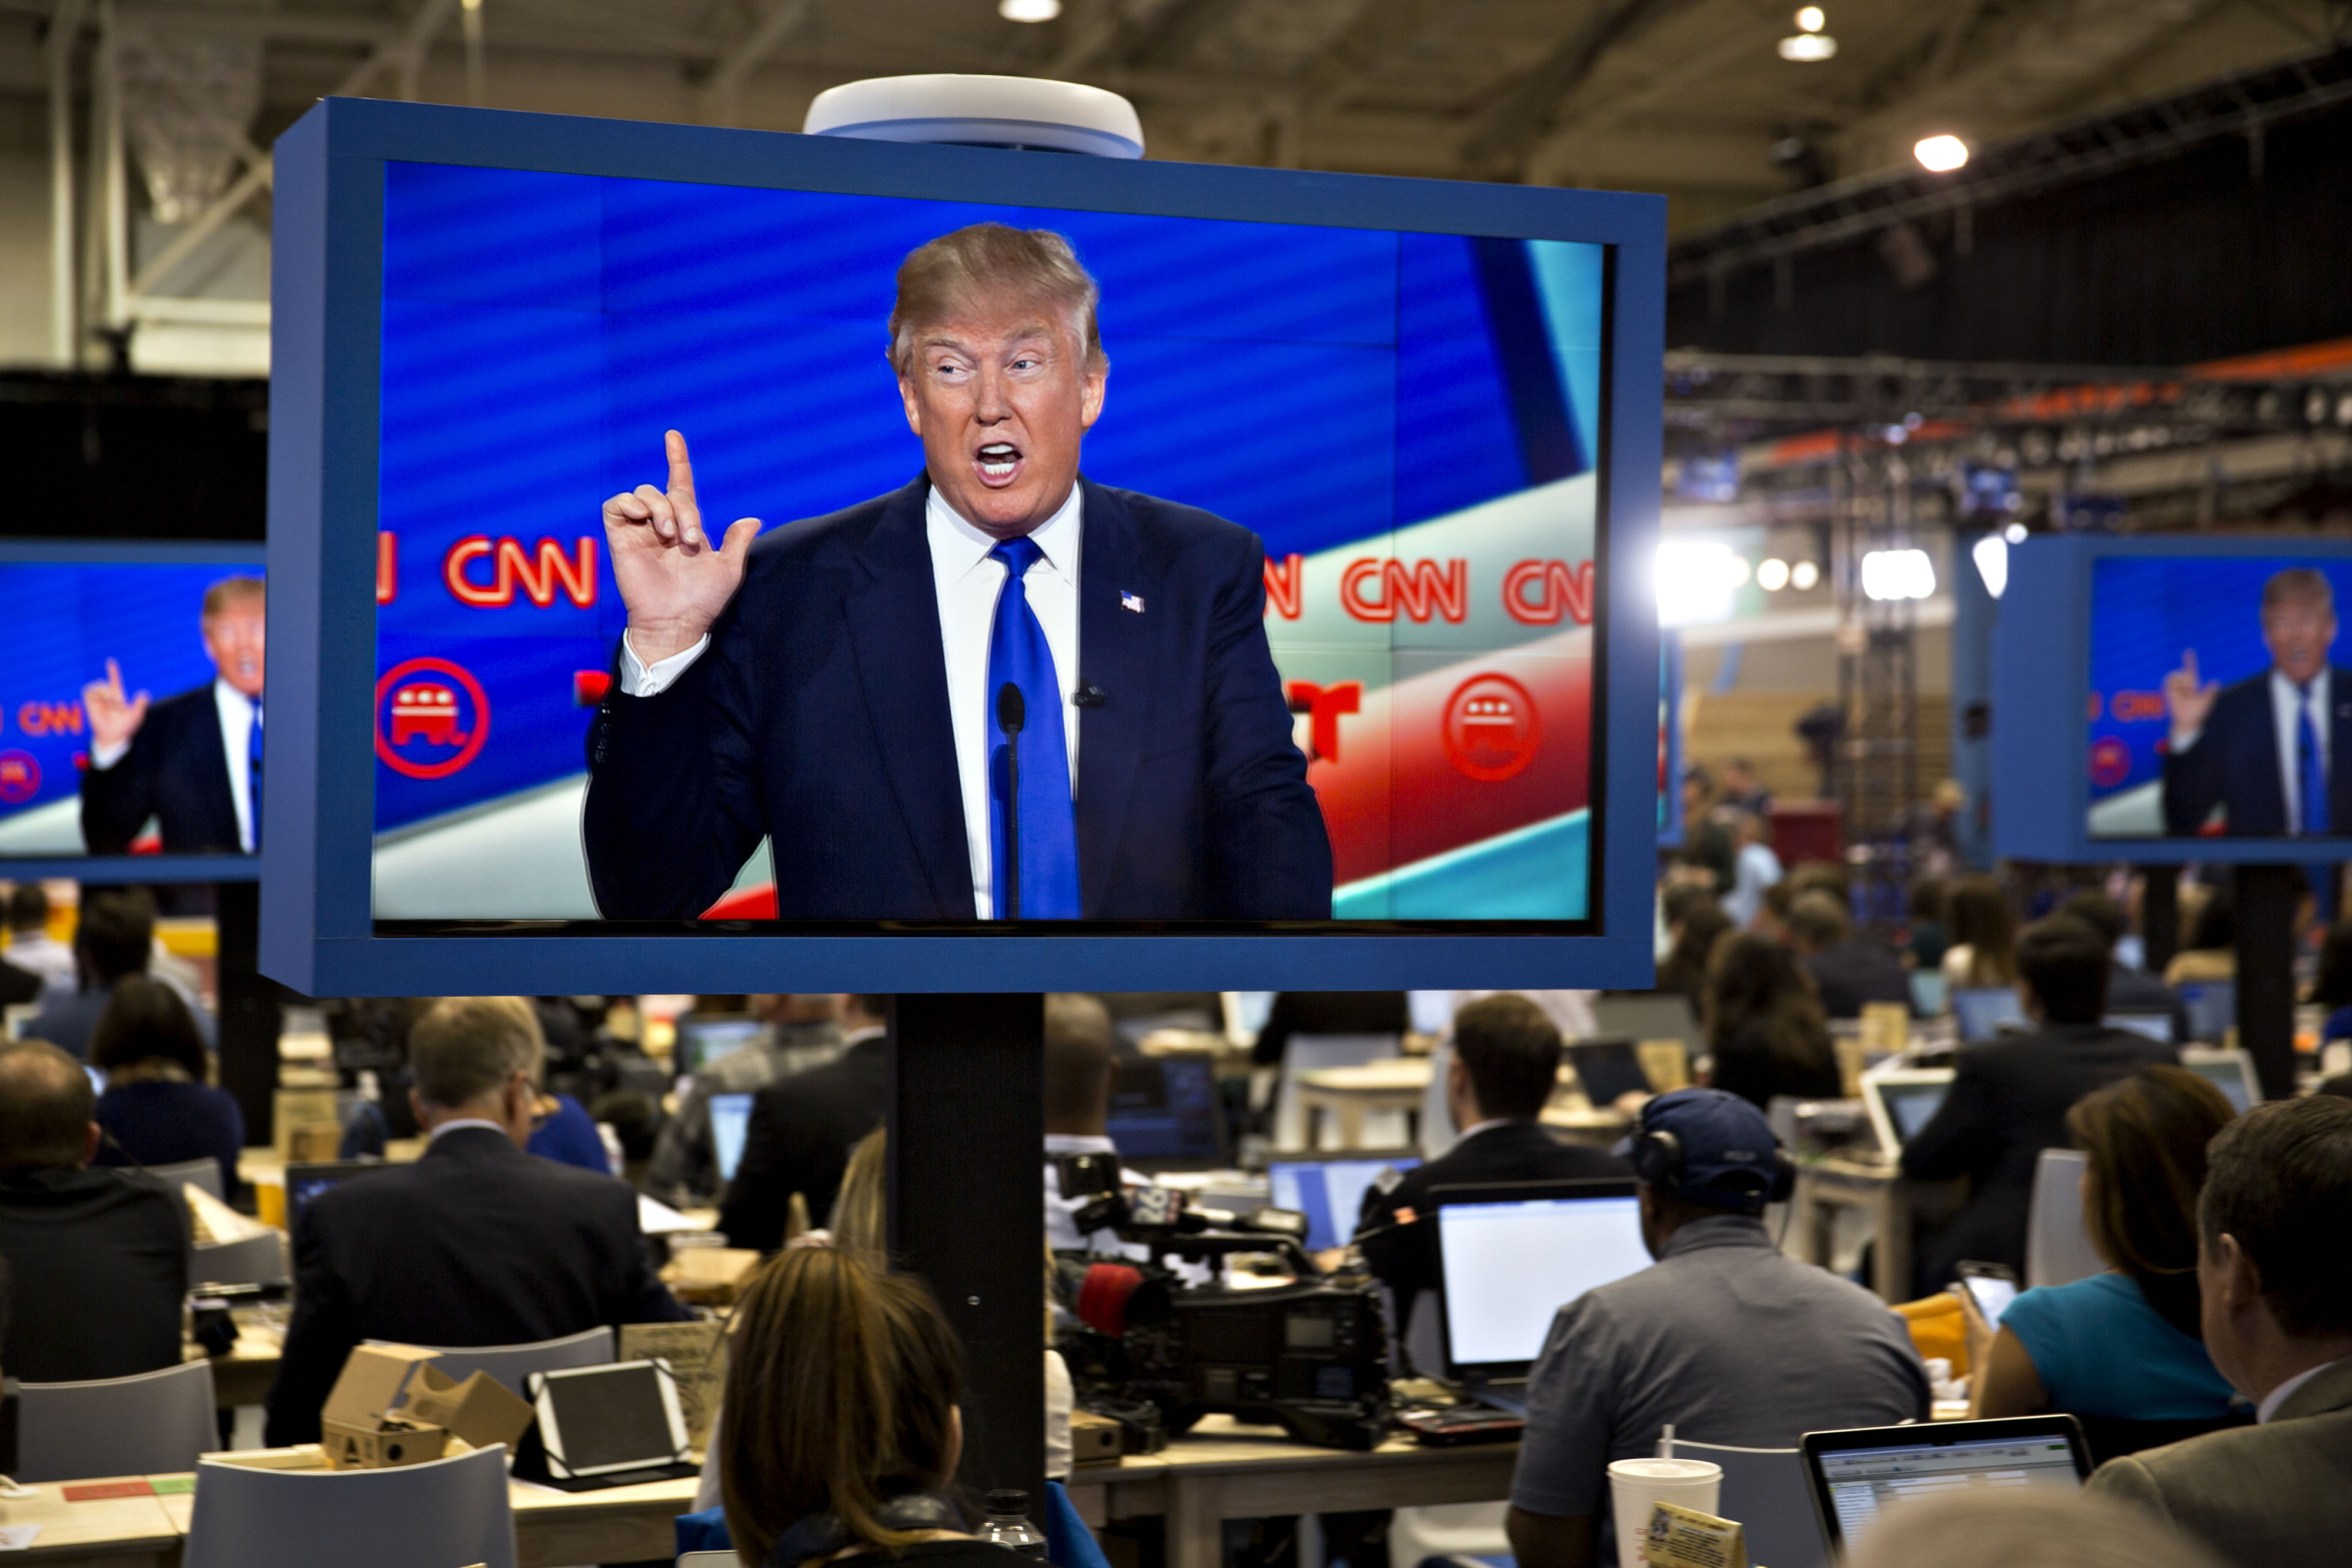 Donald Trump is seen speaking on a television screen in the filing center during the Republican presidential primary candidate debate sponsored by CNN and Telemundo at the University of Houston in Houston on  Feb. 25, 2016.